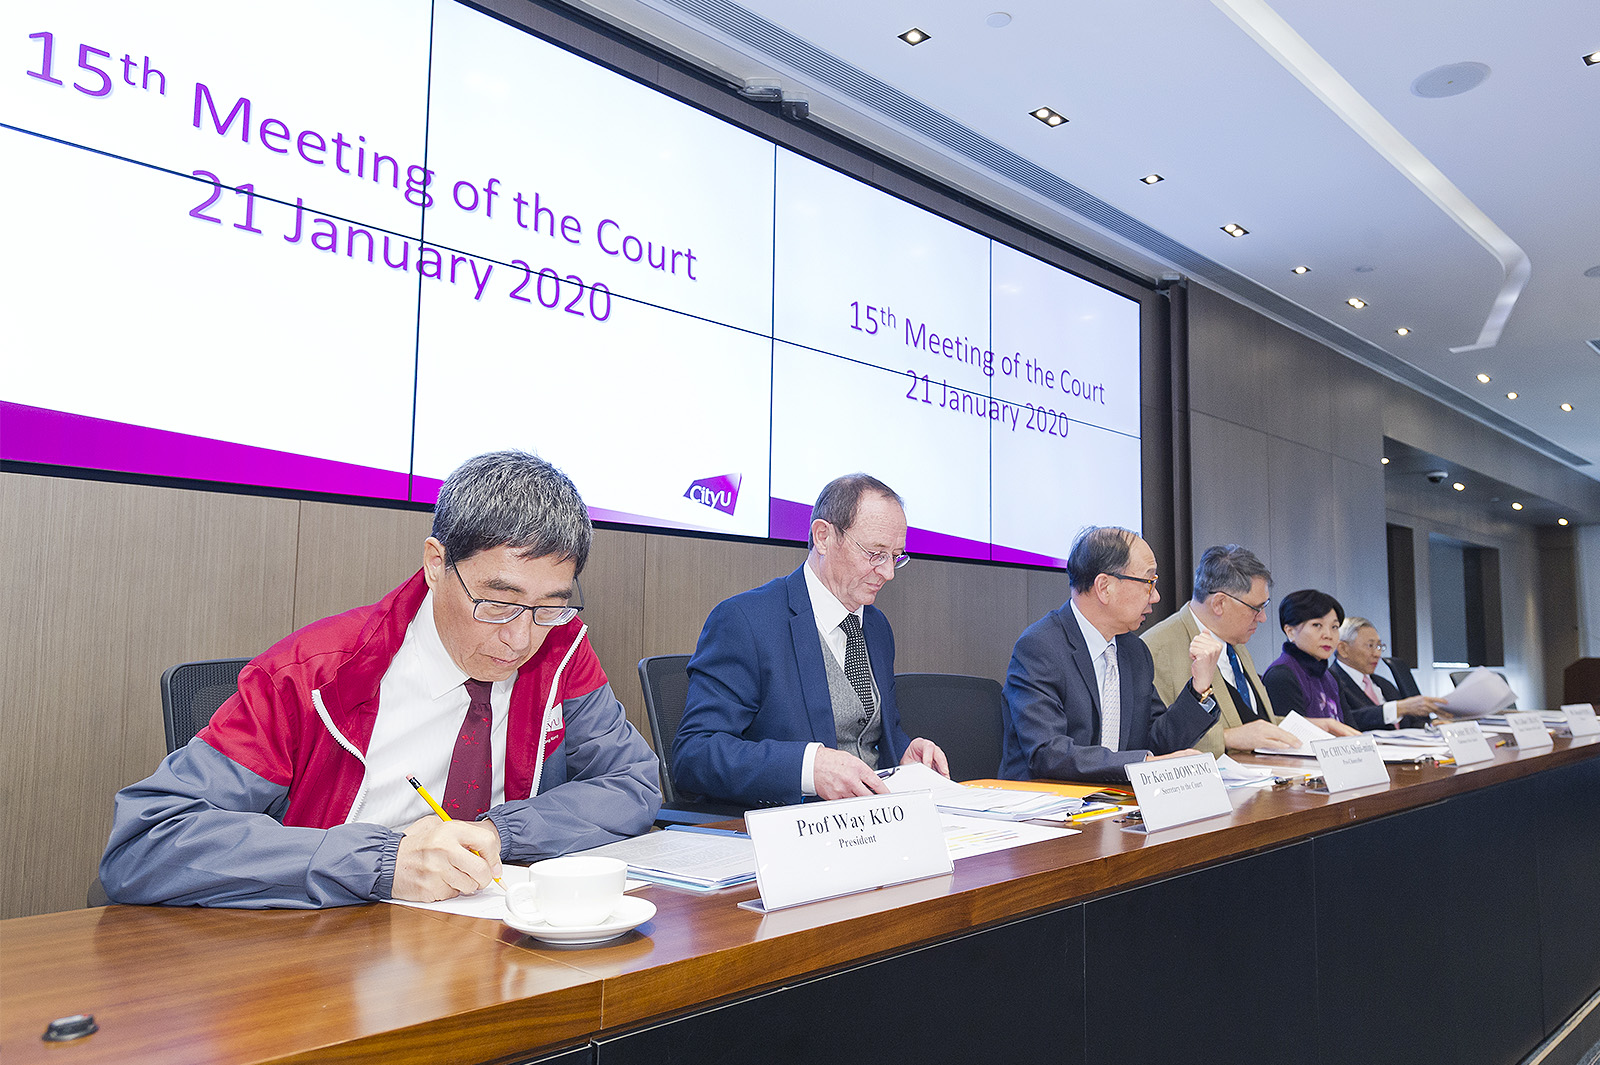 The Principal Officers of CityU brief the members of the Court about the latest developments at CityU.